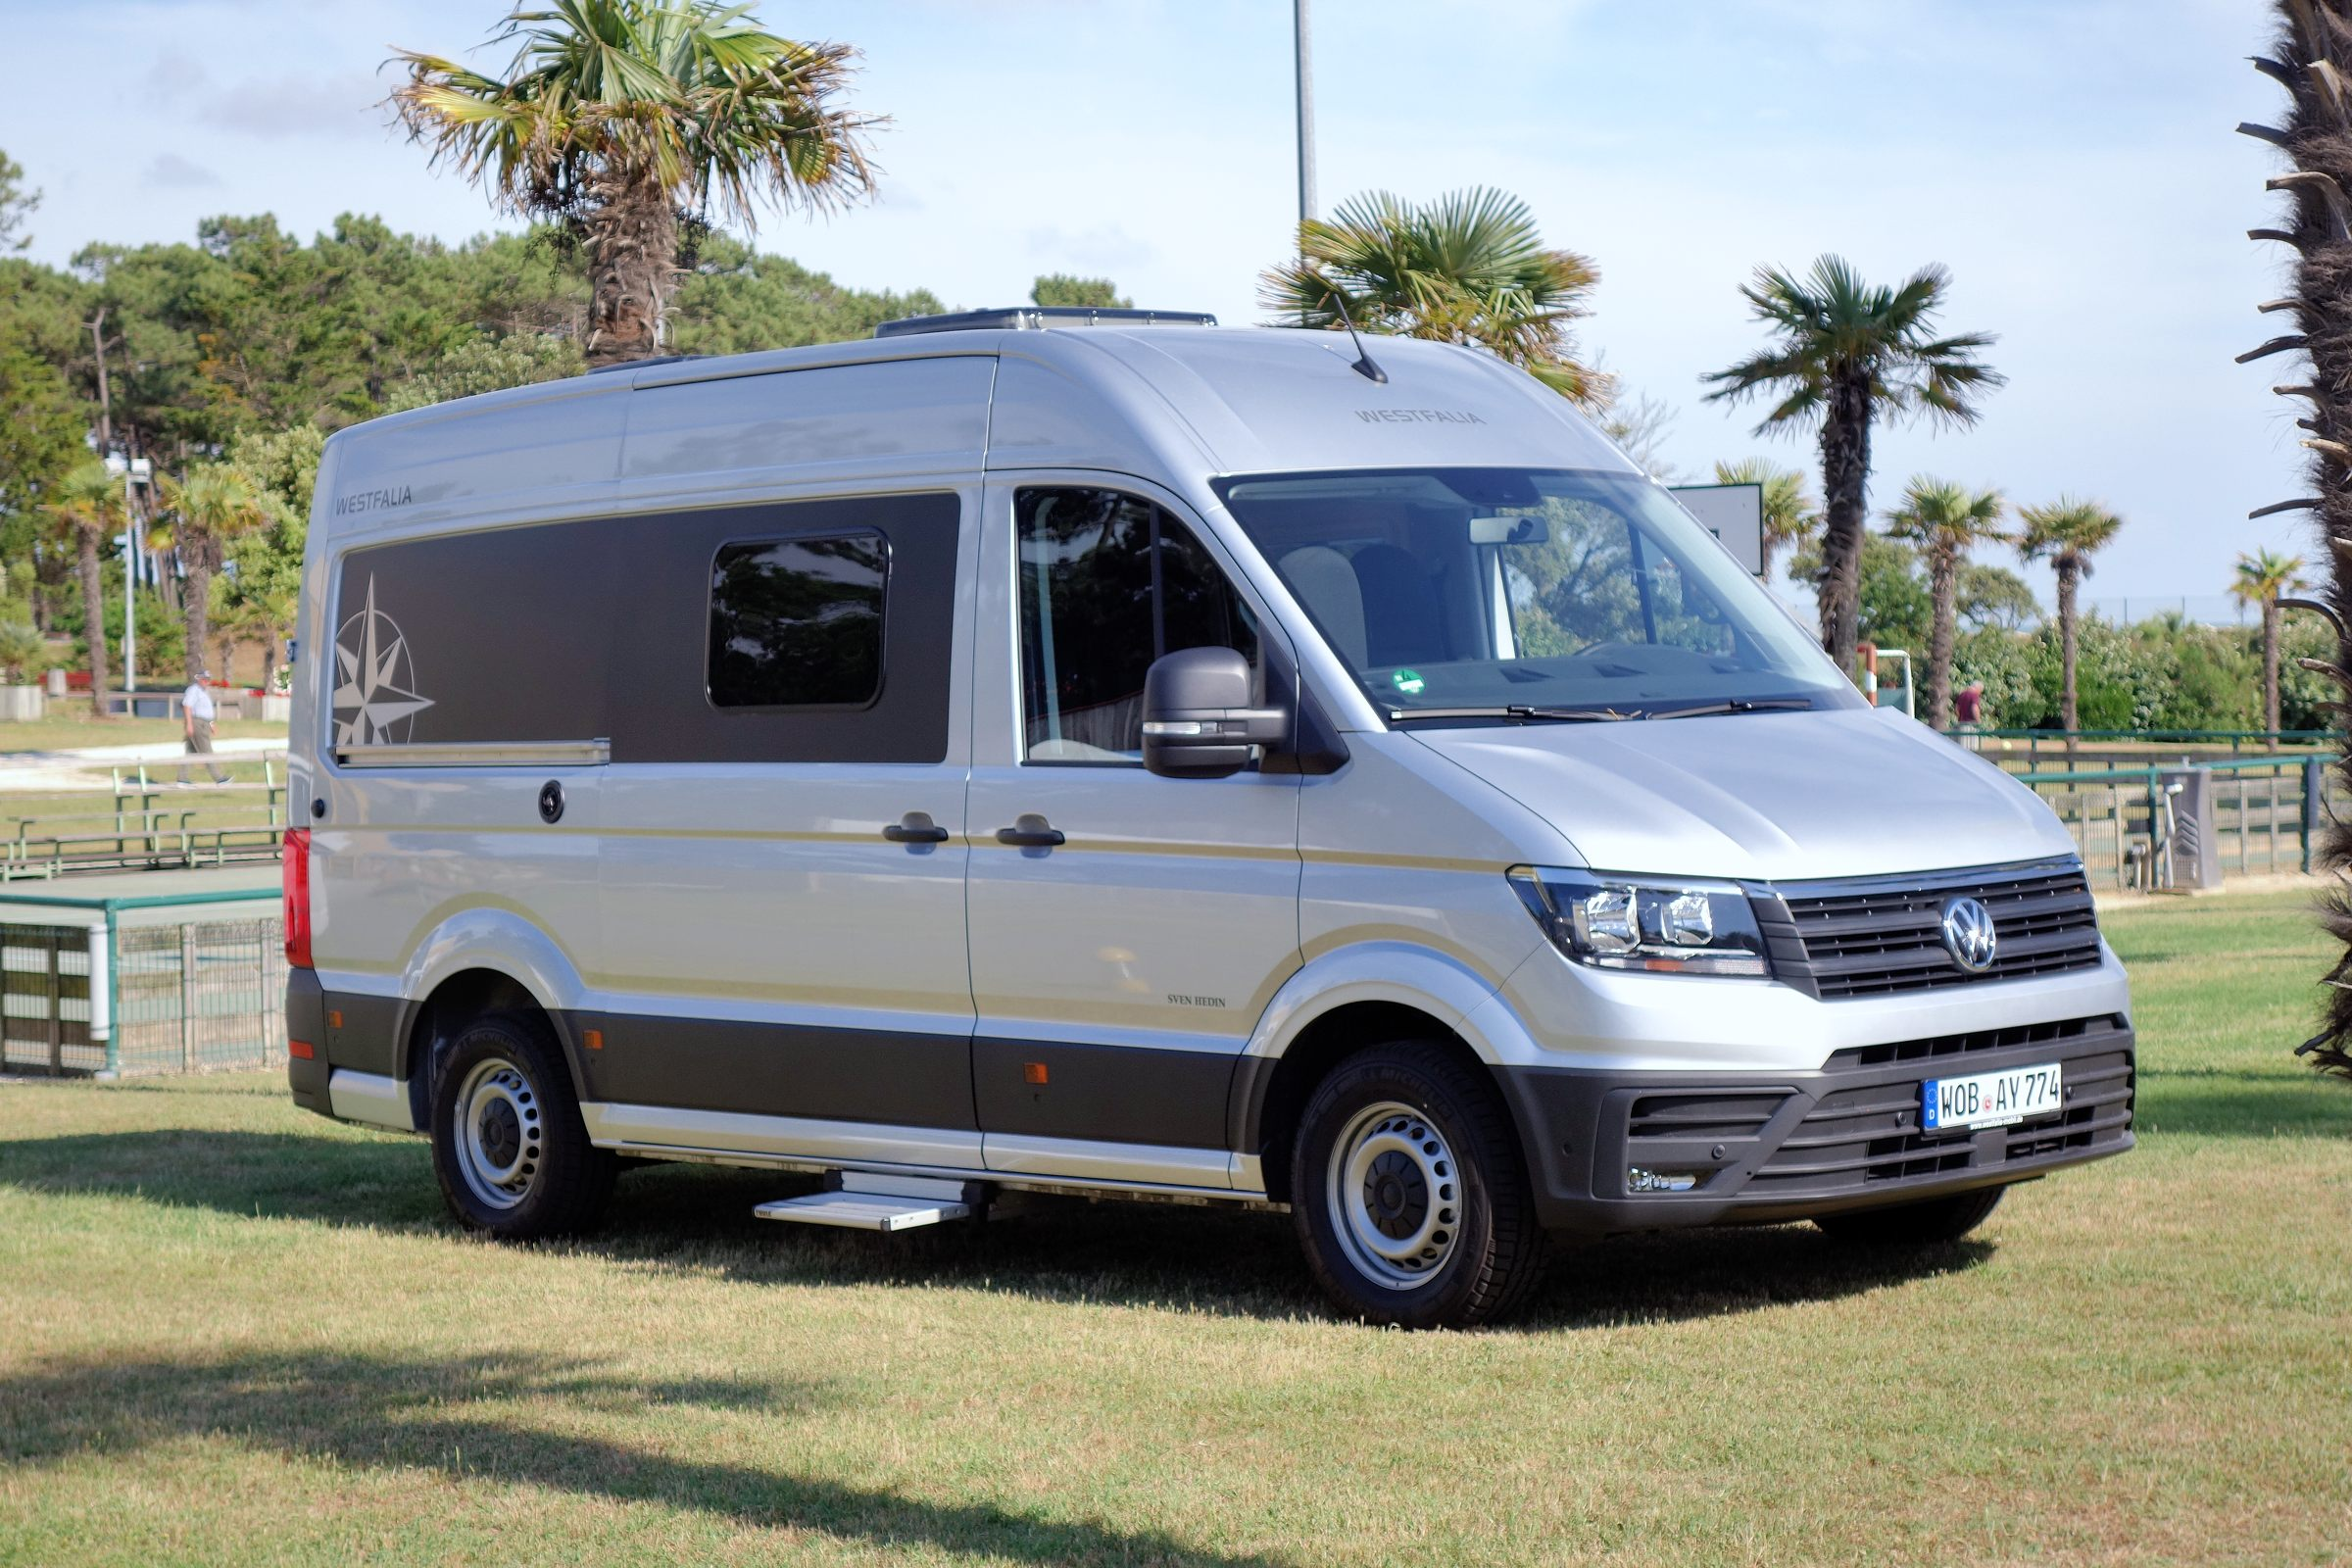 8 Reasons Why The Vw Bus Is Legendary 2017 11 as well 2017 Haendlertagung fra besides 6897592823 as well An Evening In Brighton furthermore Sale. on new vw camper